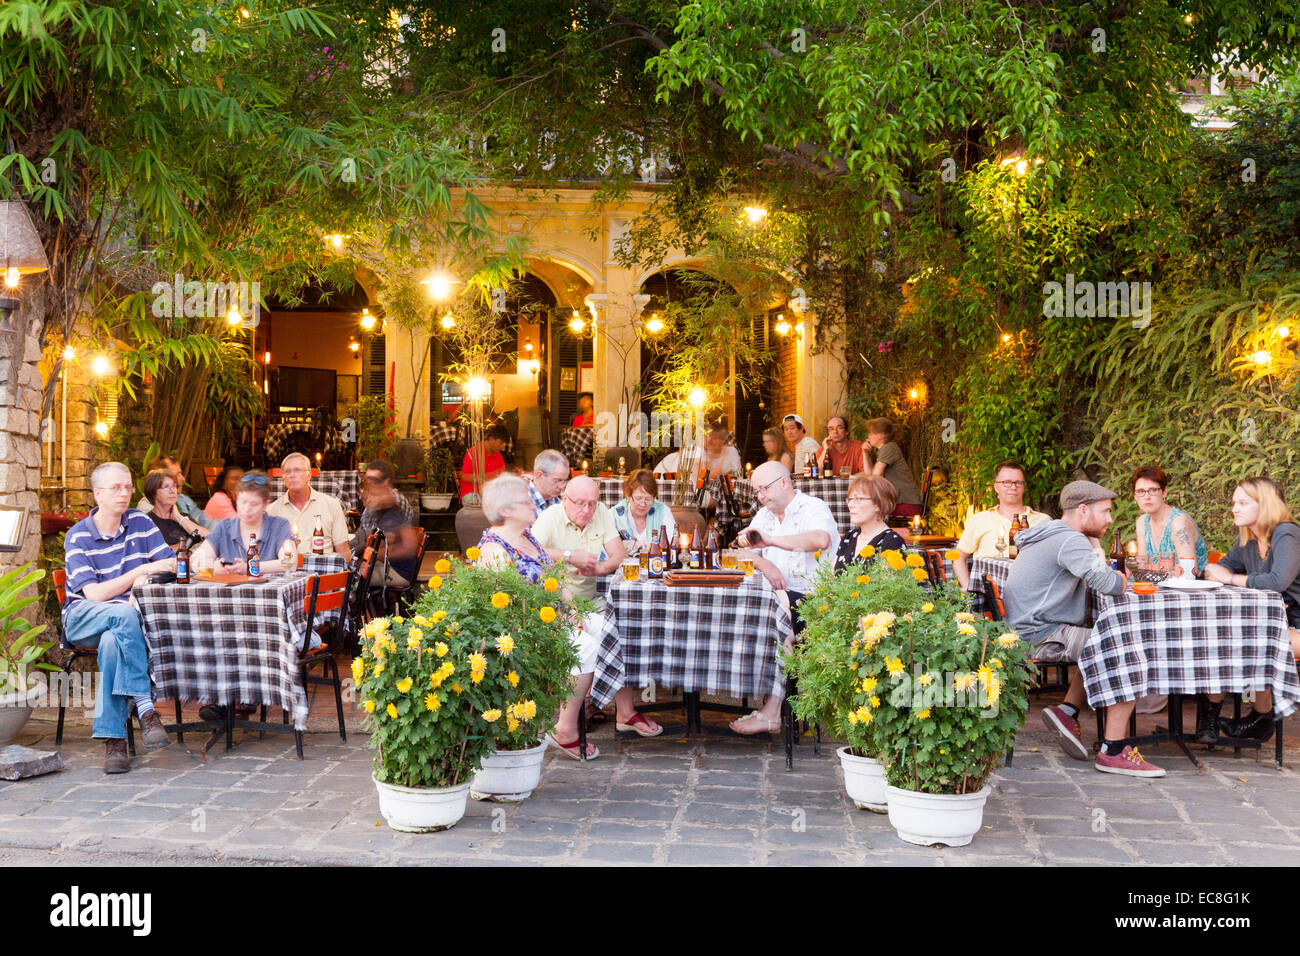 Diners at a restaurant, Hoi An, Vietnam - Stock Image